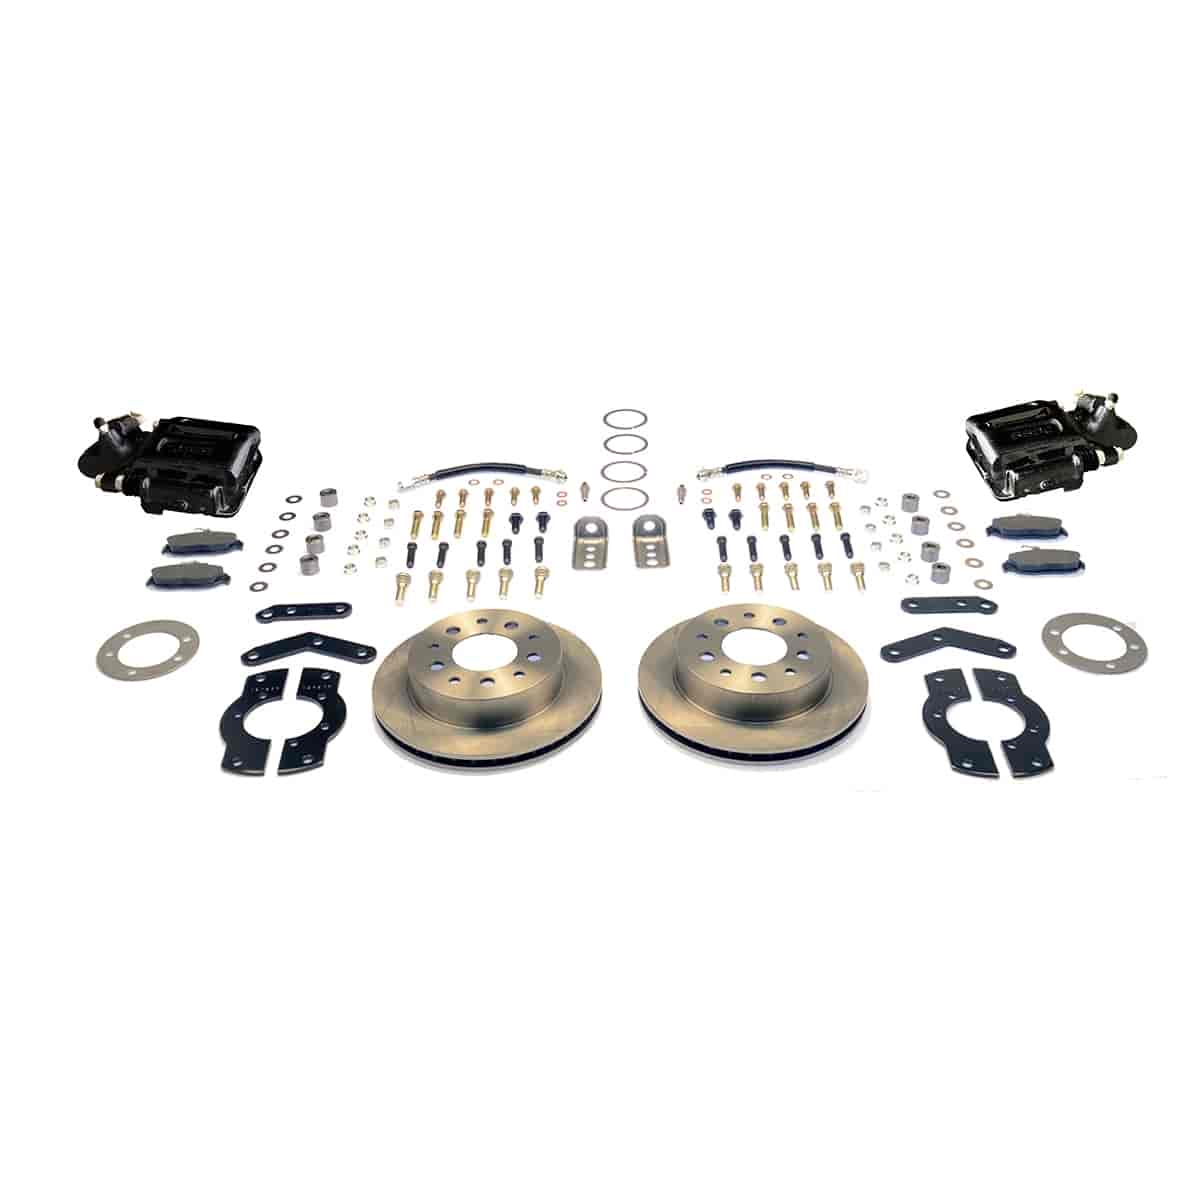 Stainless Steel Brakes A125-4BK - Stainless Steel Brakes Single Piston Rear Drum to Disc Brake Conversion Kits